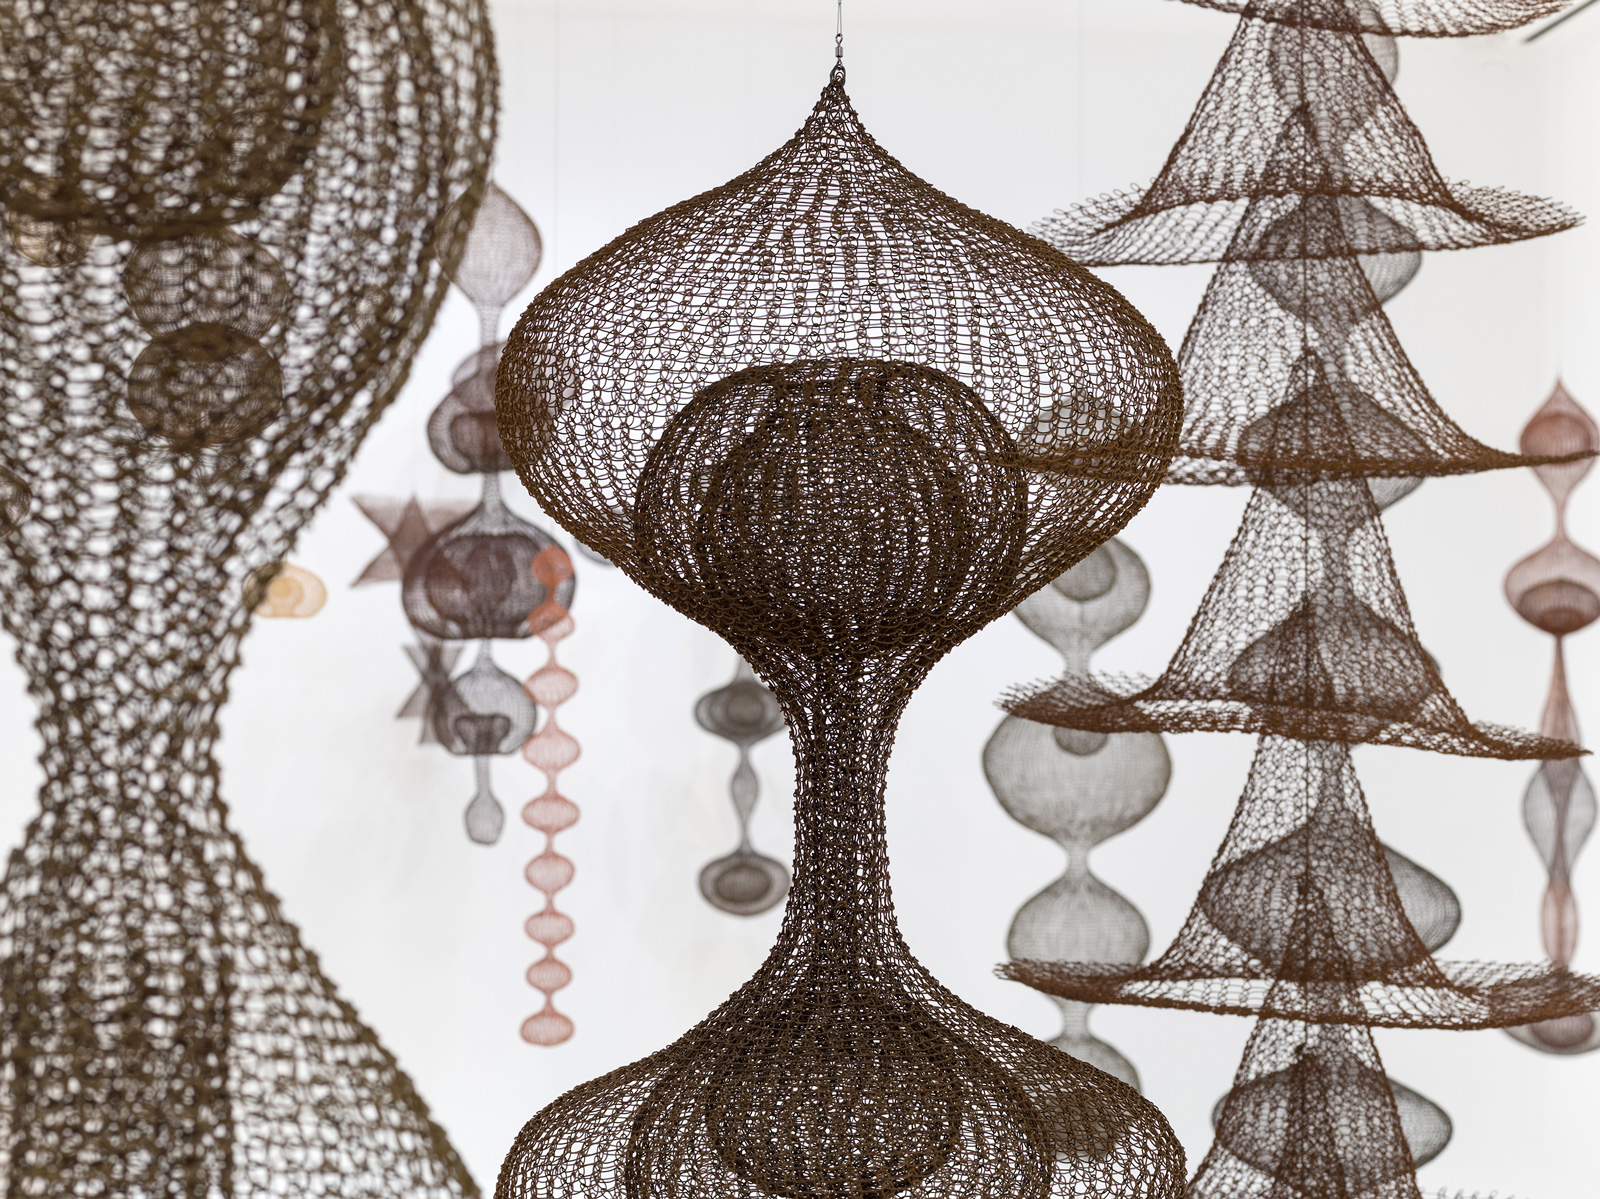 Ruth Asawa: Tending the Metal Garden | by Zack Hatfield | NYR Daily ...